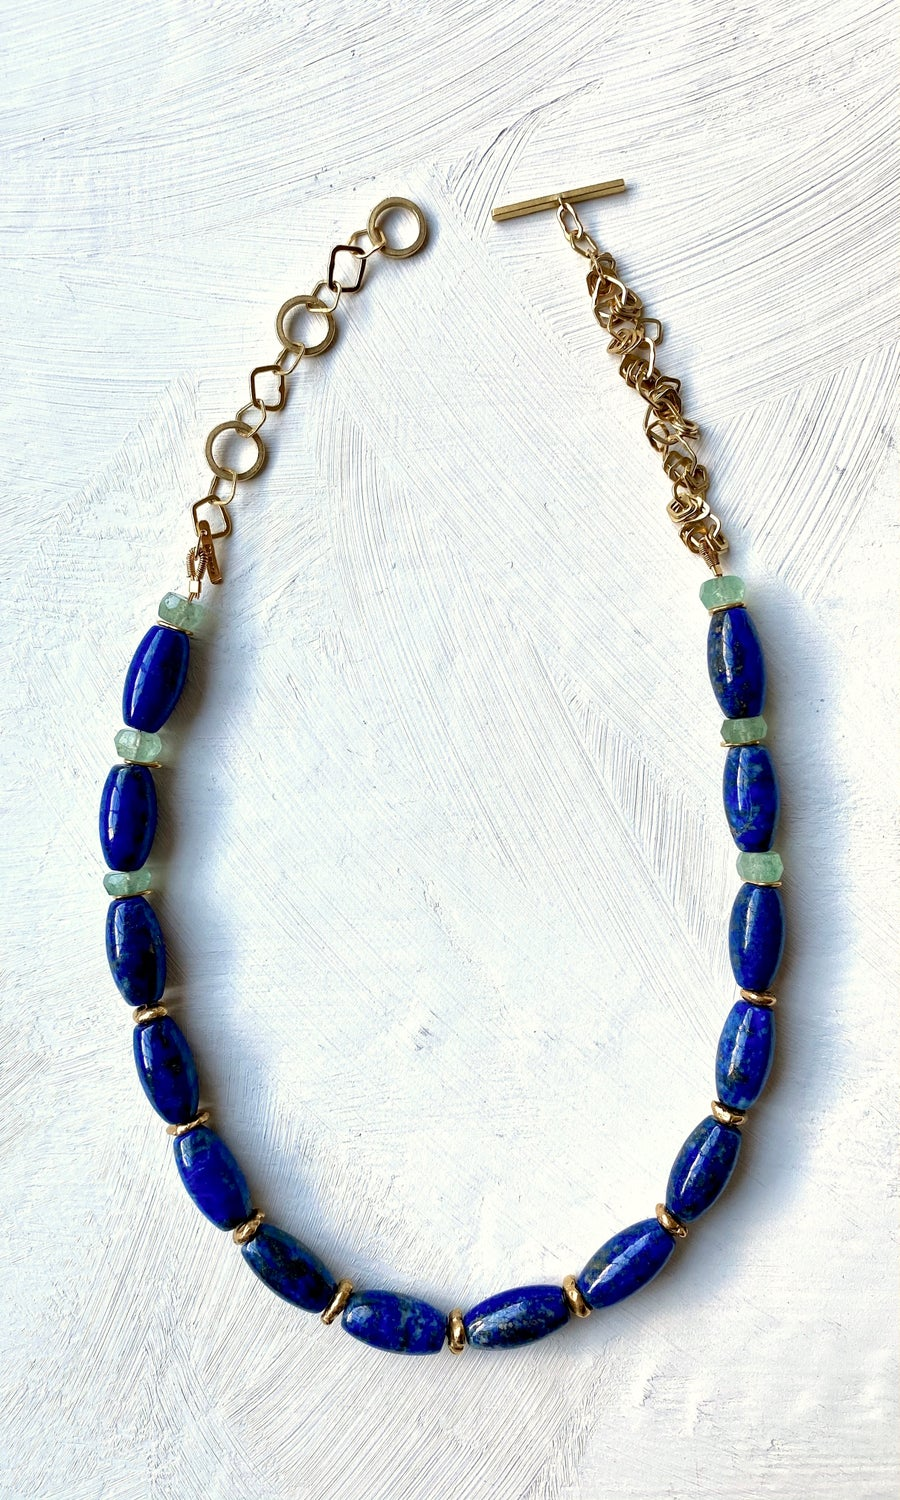 Image of Indian summer beaded necklace - Lapis Lazuli/Green Beryl